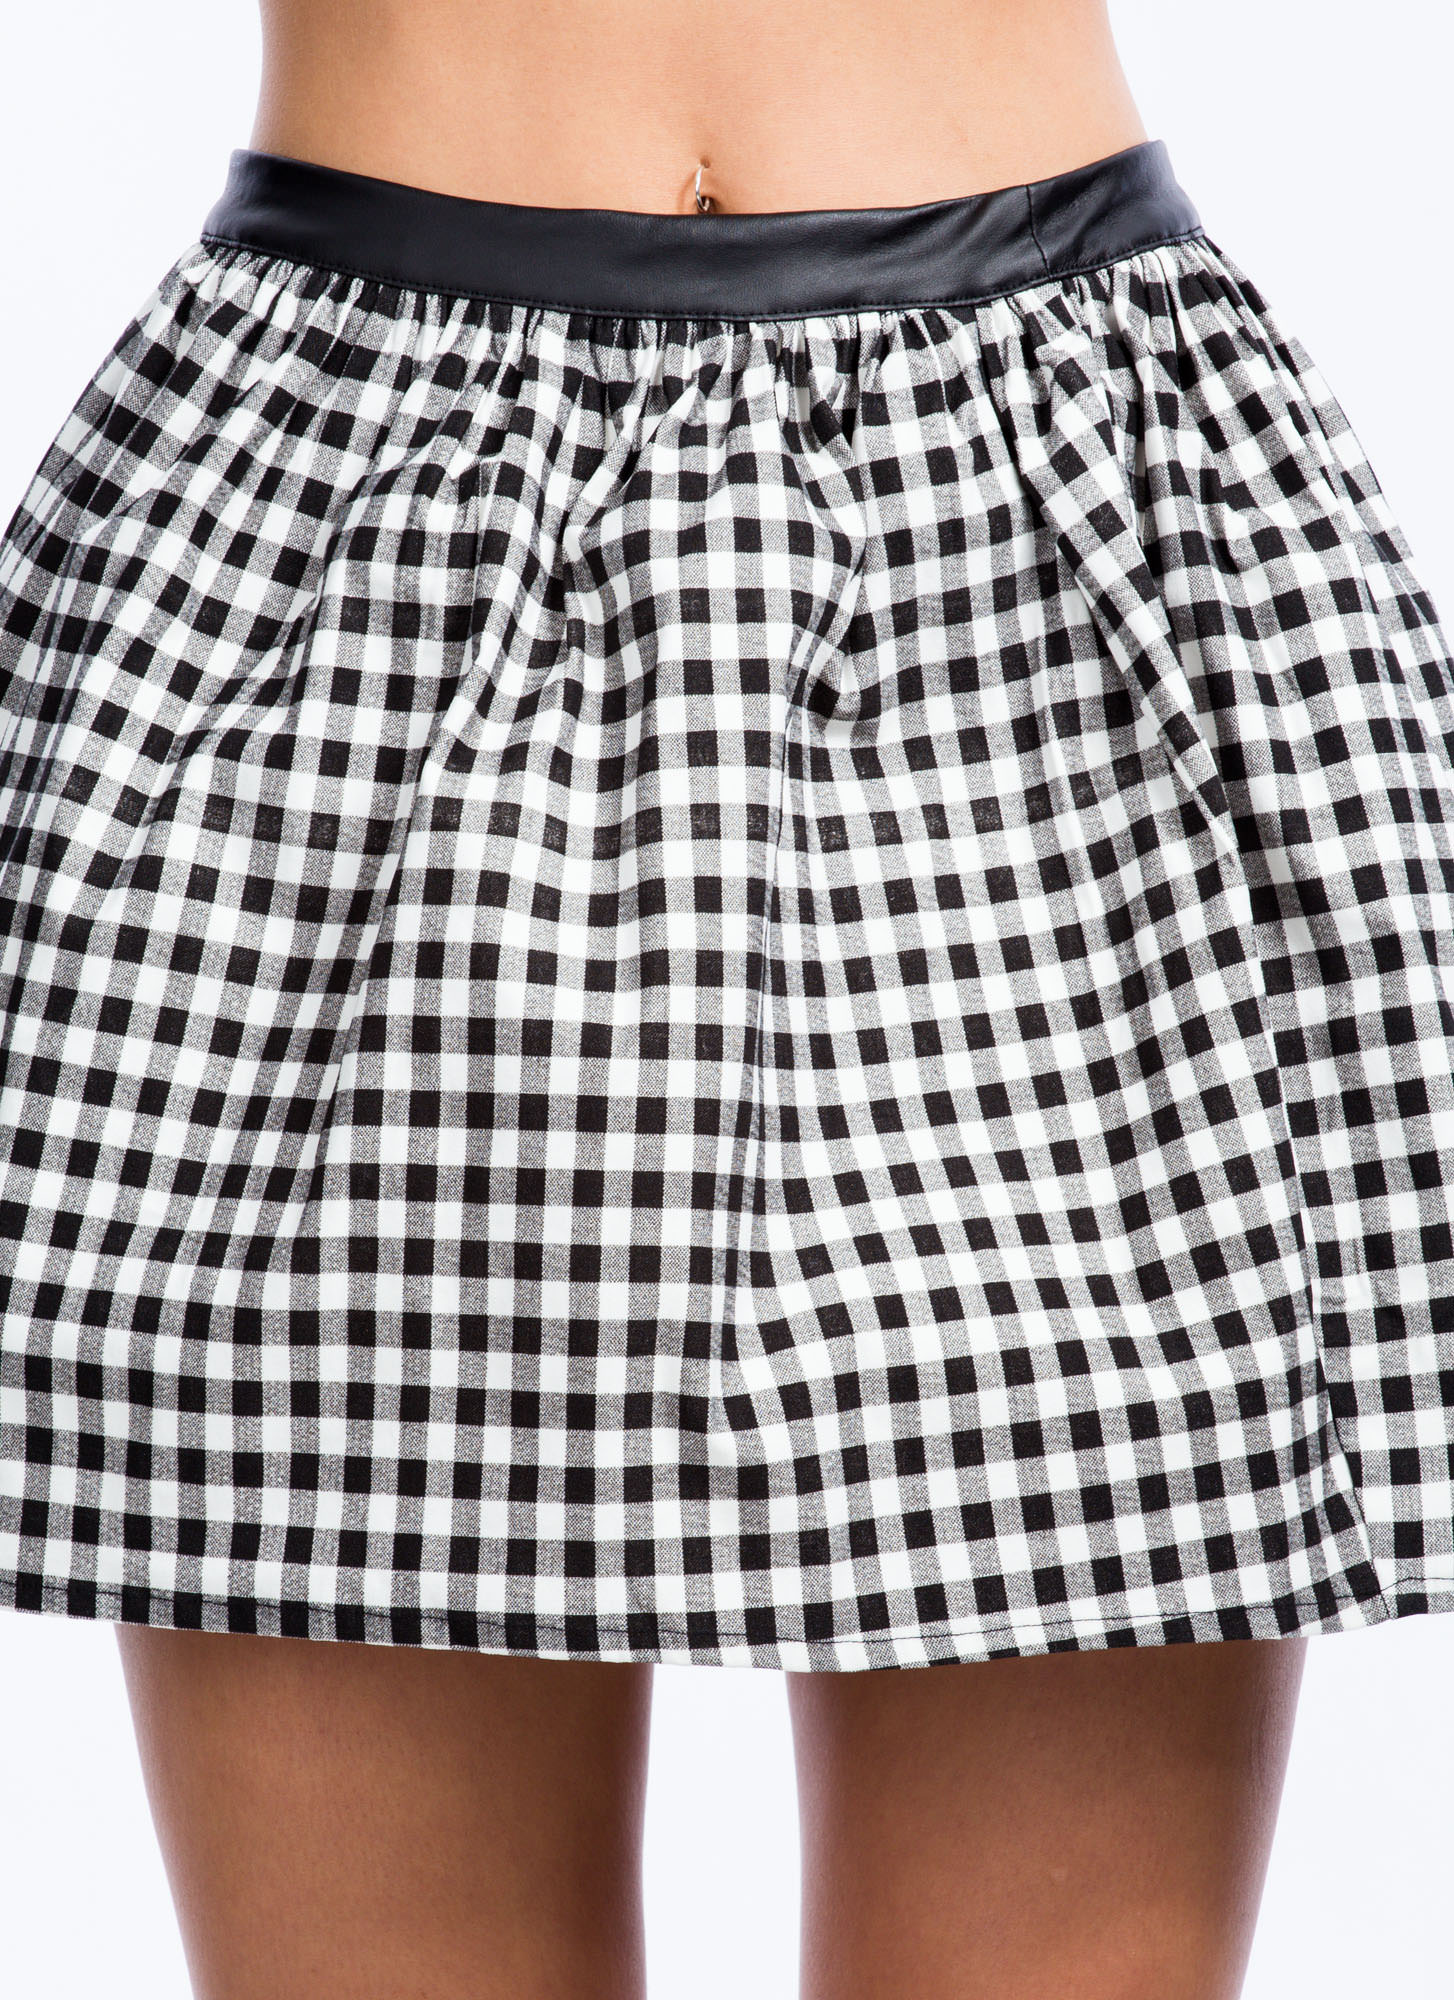 Gingham Style Tulle Skater Skirt BLACKWHITE (Final Sale)